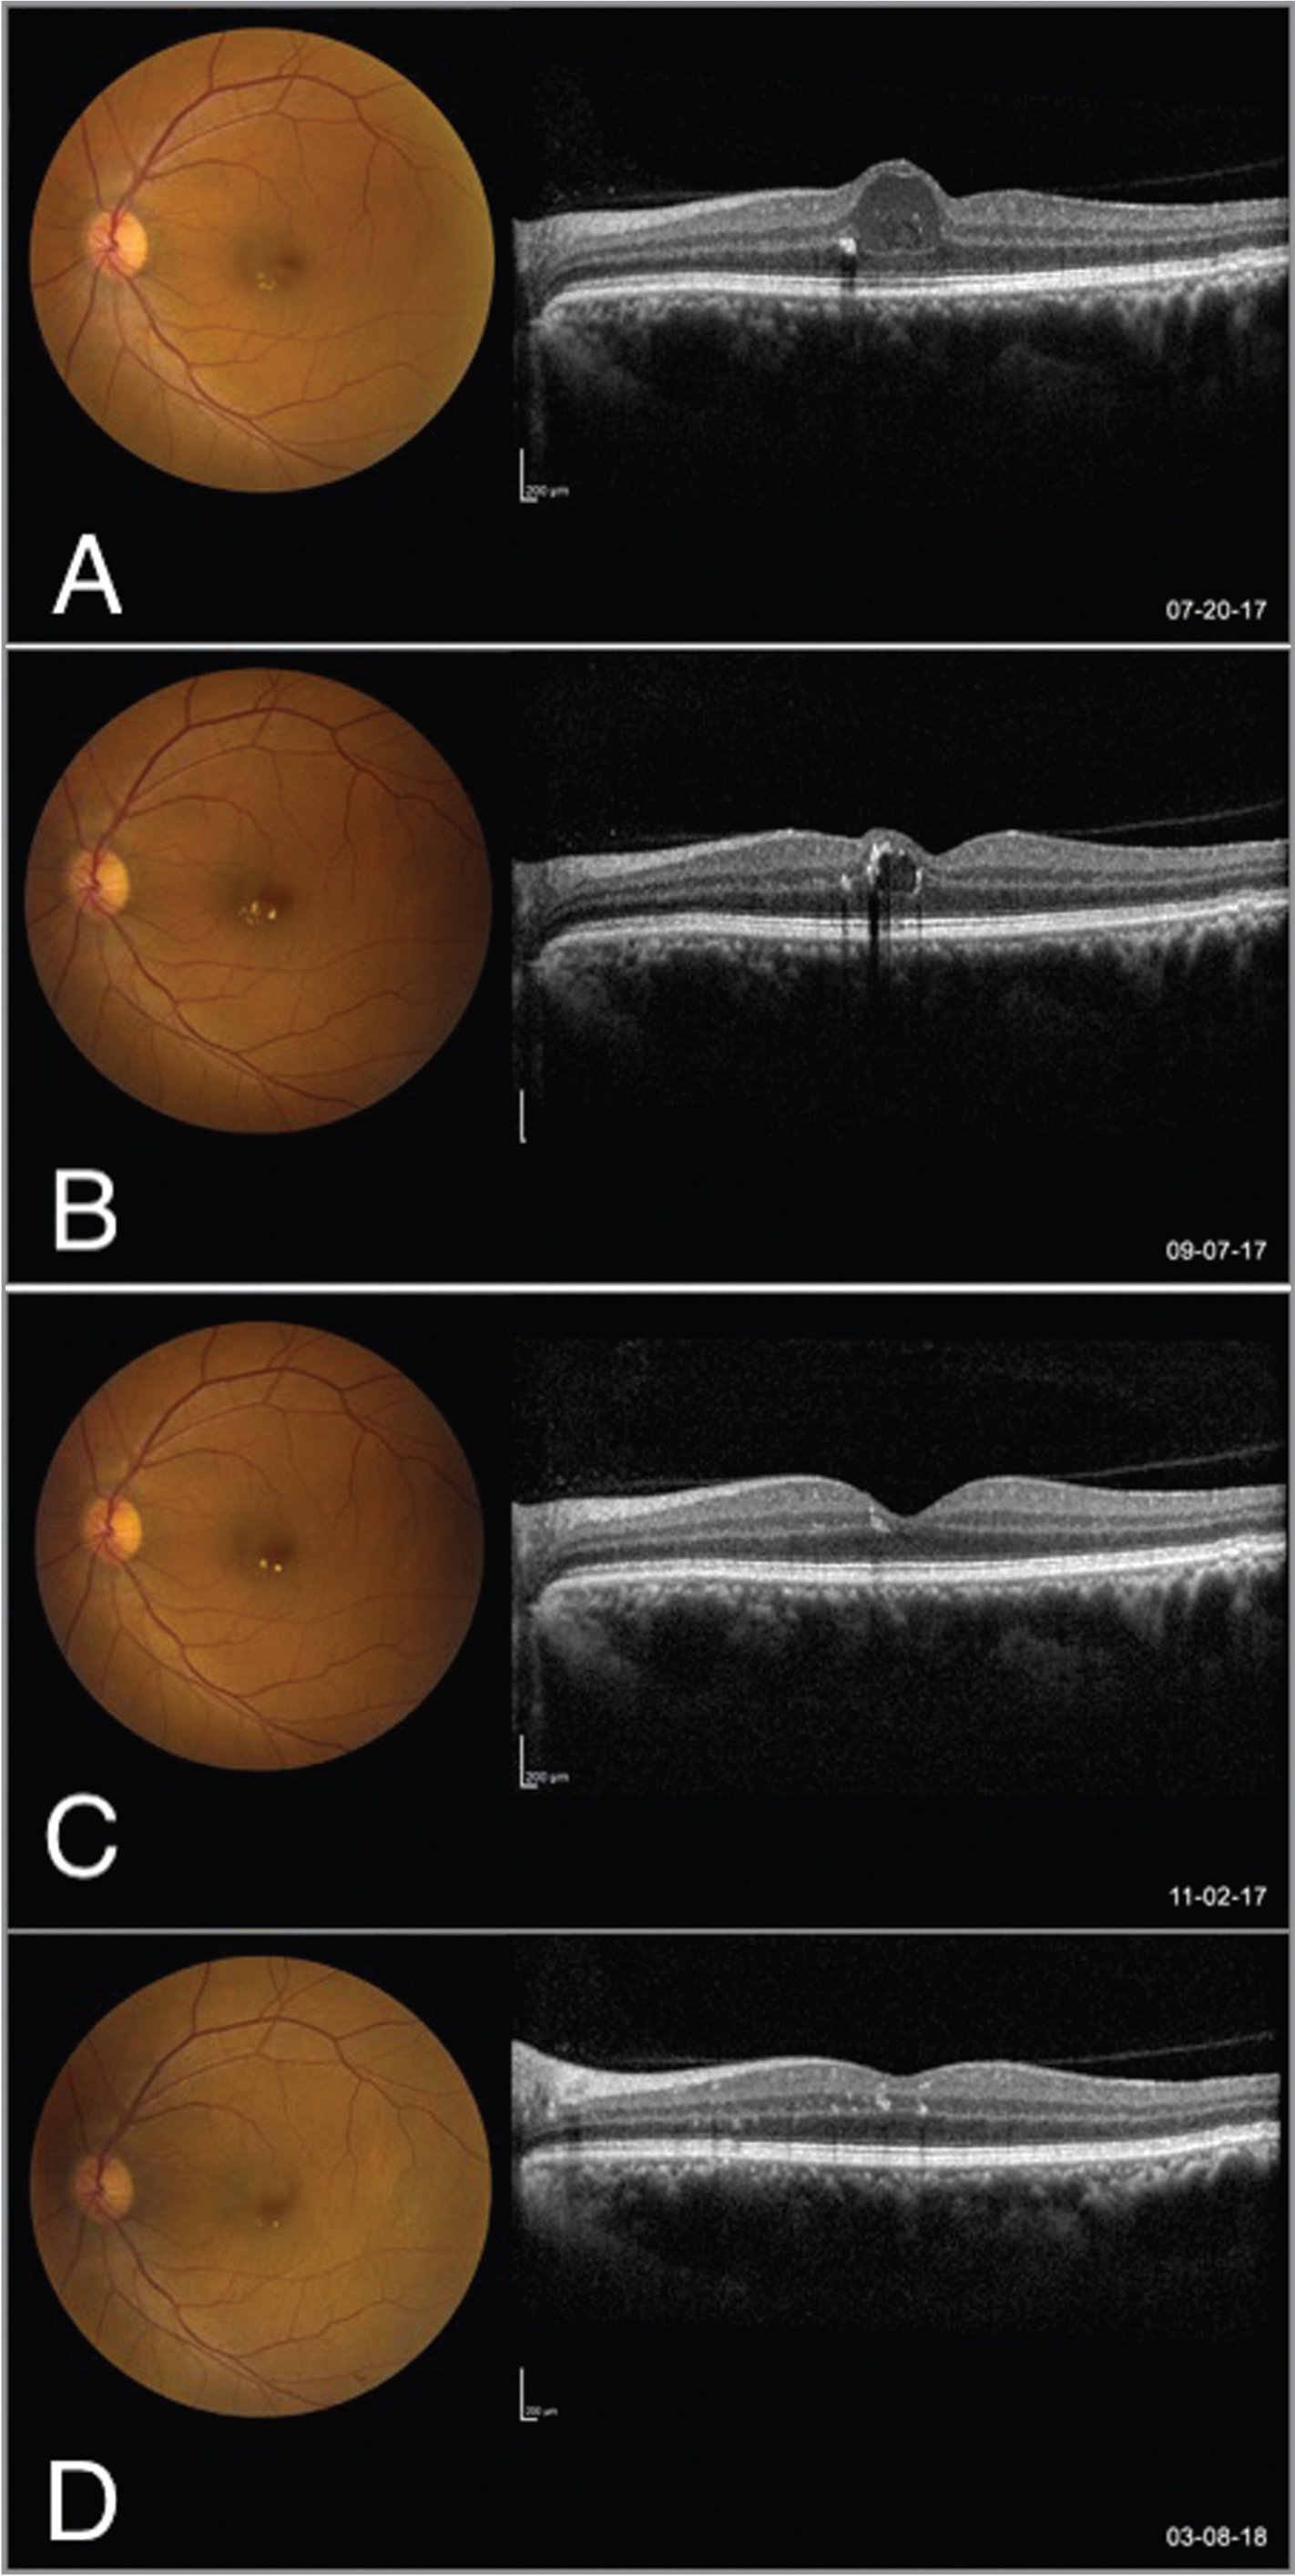 Color fundus photos (left) and optical coherence tomography (OCT) (right) of left eye at presentation (A), week 7 (B), week 15 (C), and month 8 (D). Presence of intraretinal fluid decreased spontaneously over time. In panels A and B, as fluid decreased on OCT, hyperreflective material and hard exudates increased. Over time, hyperreflective material on OCT and hard exudates on examination improved.